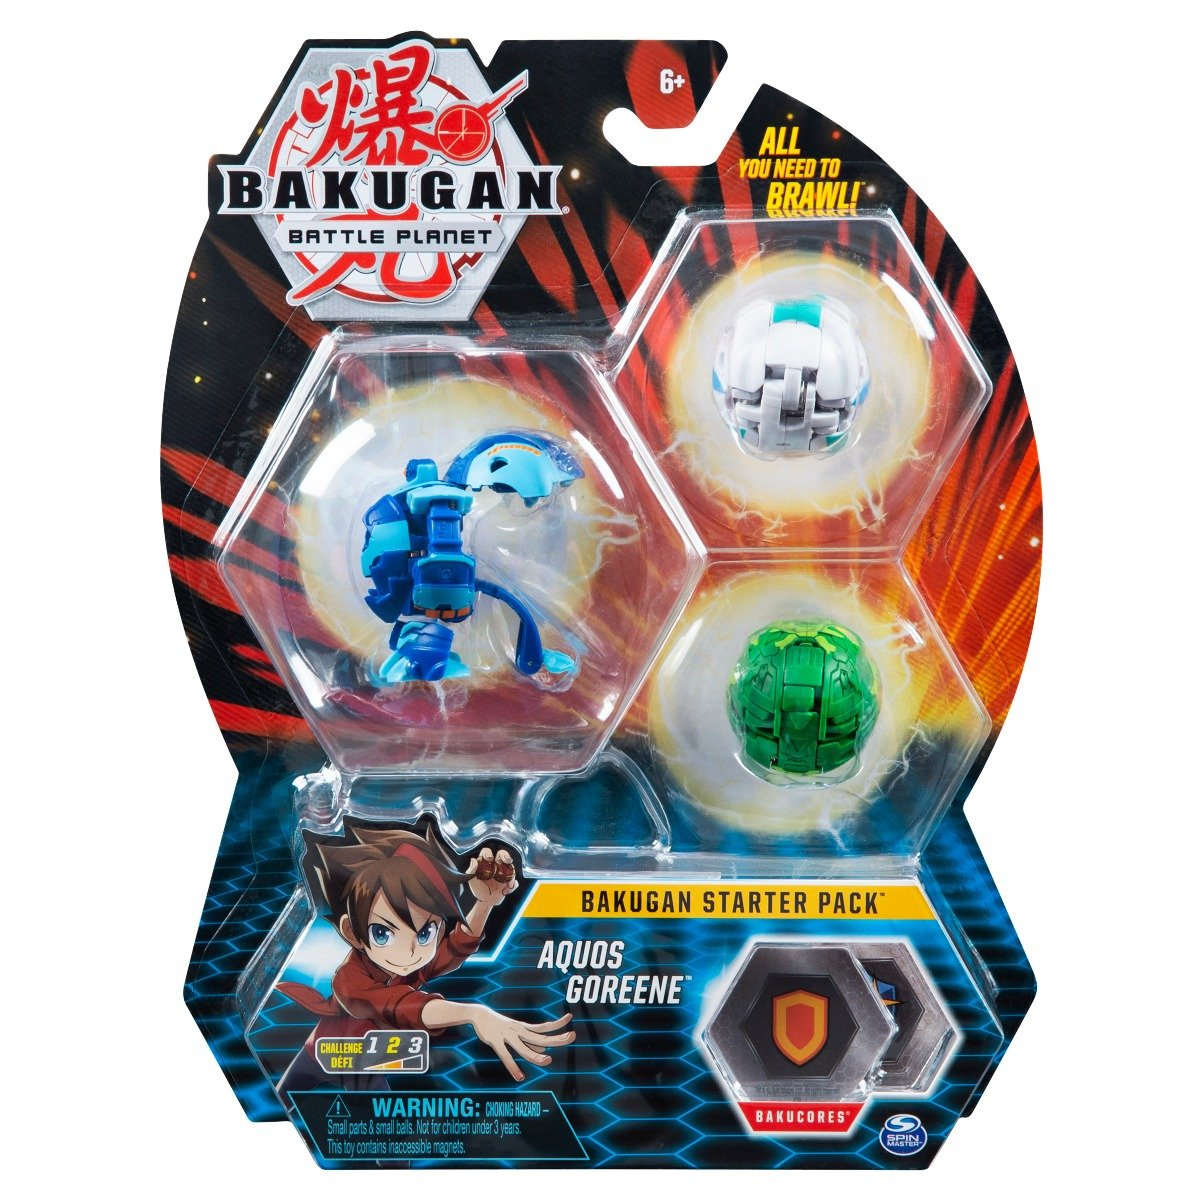 Set Bakugan Battle Planet Starter Pack, Aquos Goreene, 20119856